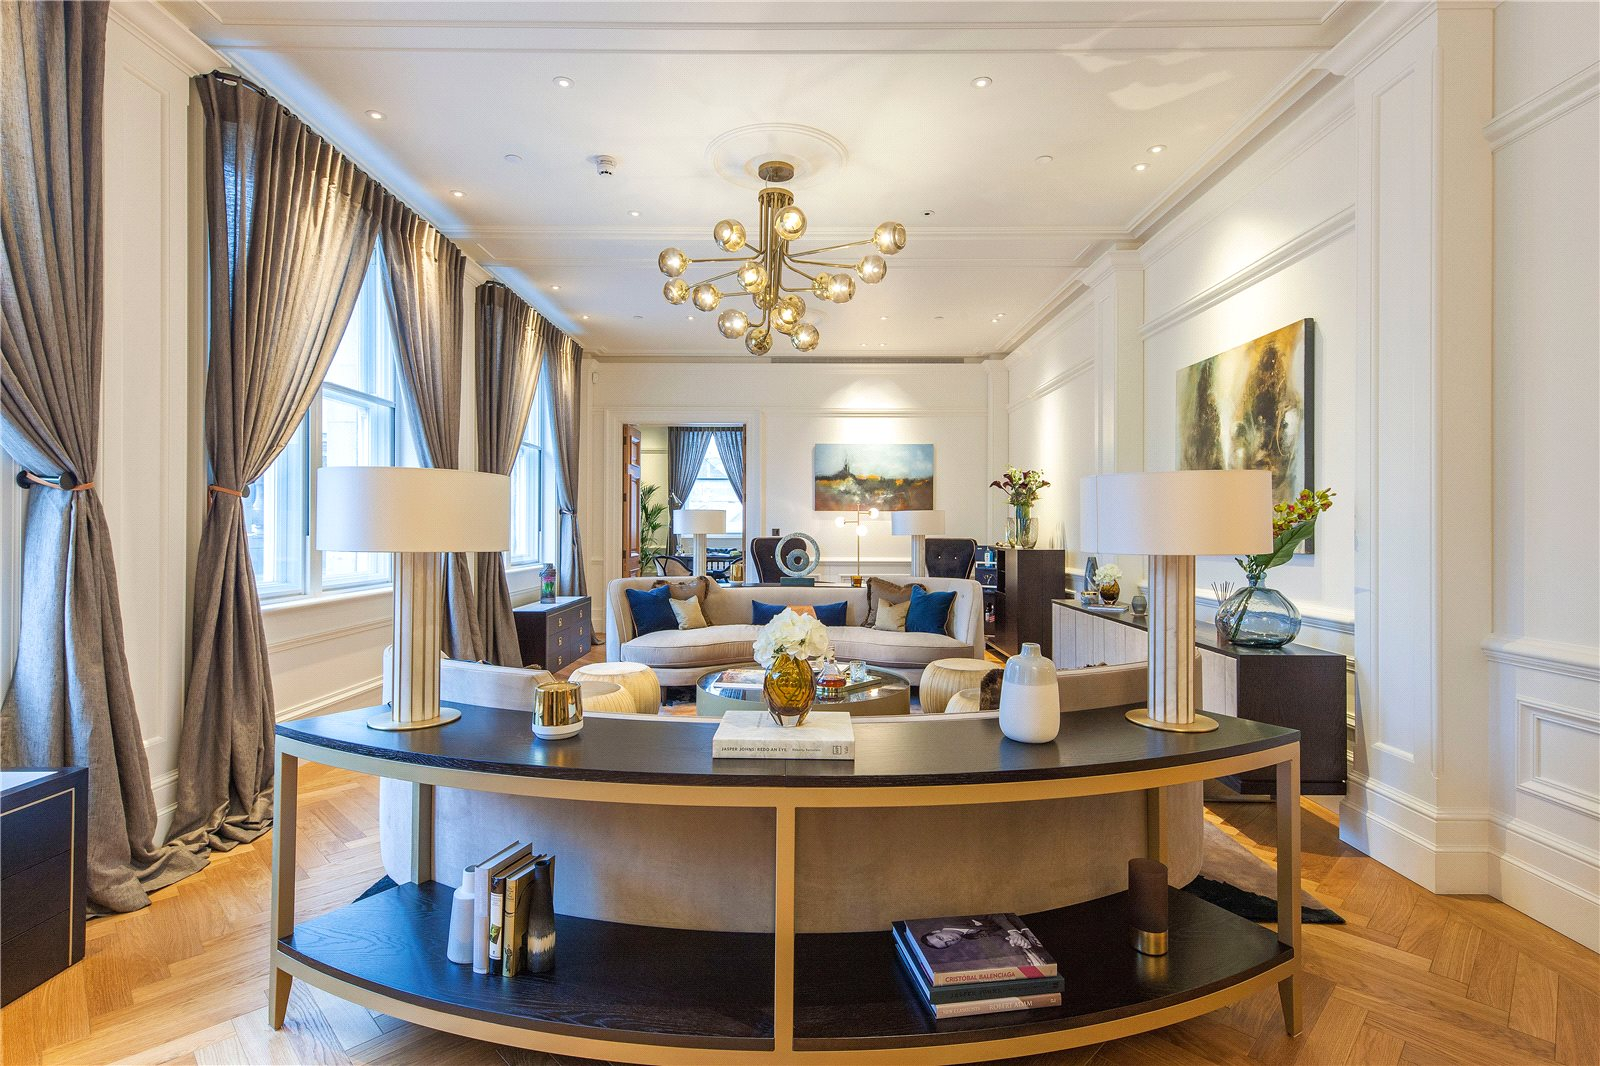 Apartments / Residences for Sale at Cockspur Street, London, SW1Y London, England